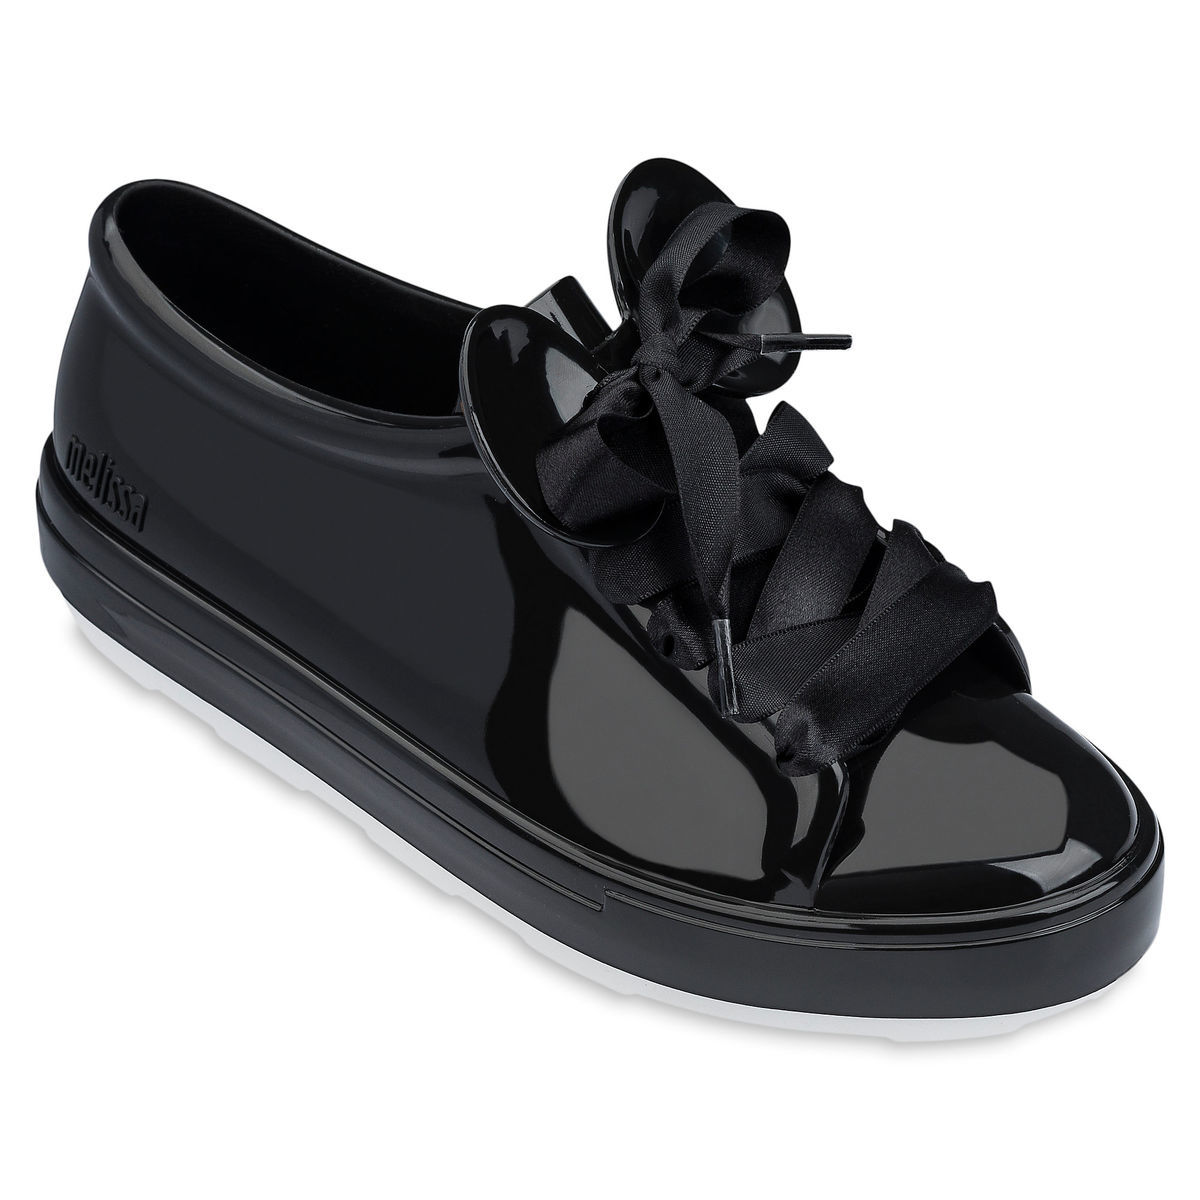 Mickey Mouse Sneakers For Women By Melissa Black Shopdisney